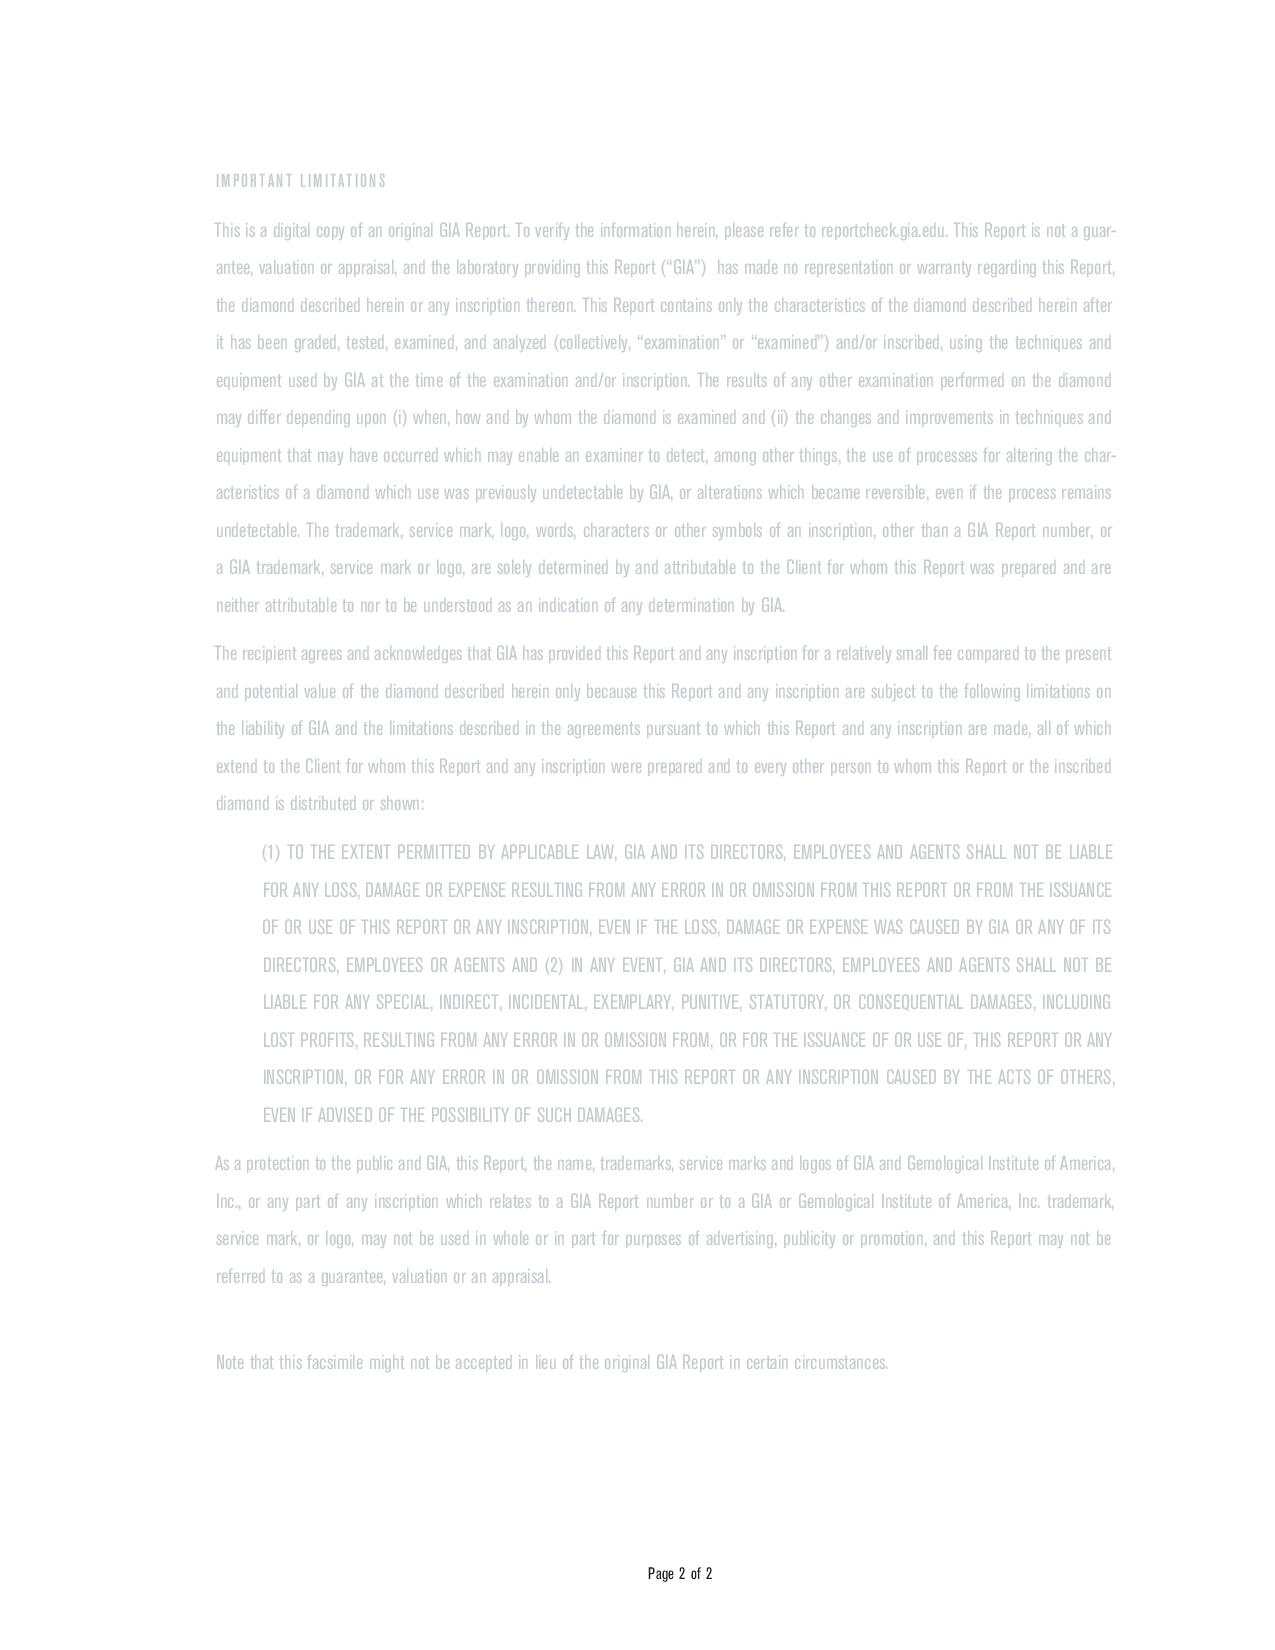 This is a 1.01 carat round shape, E color, VVS1 clarity natural diamond accompanied by a GIA grading report.